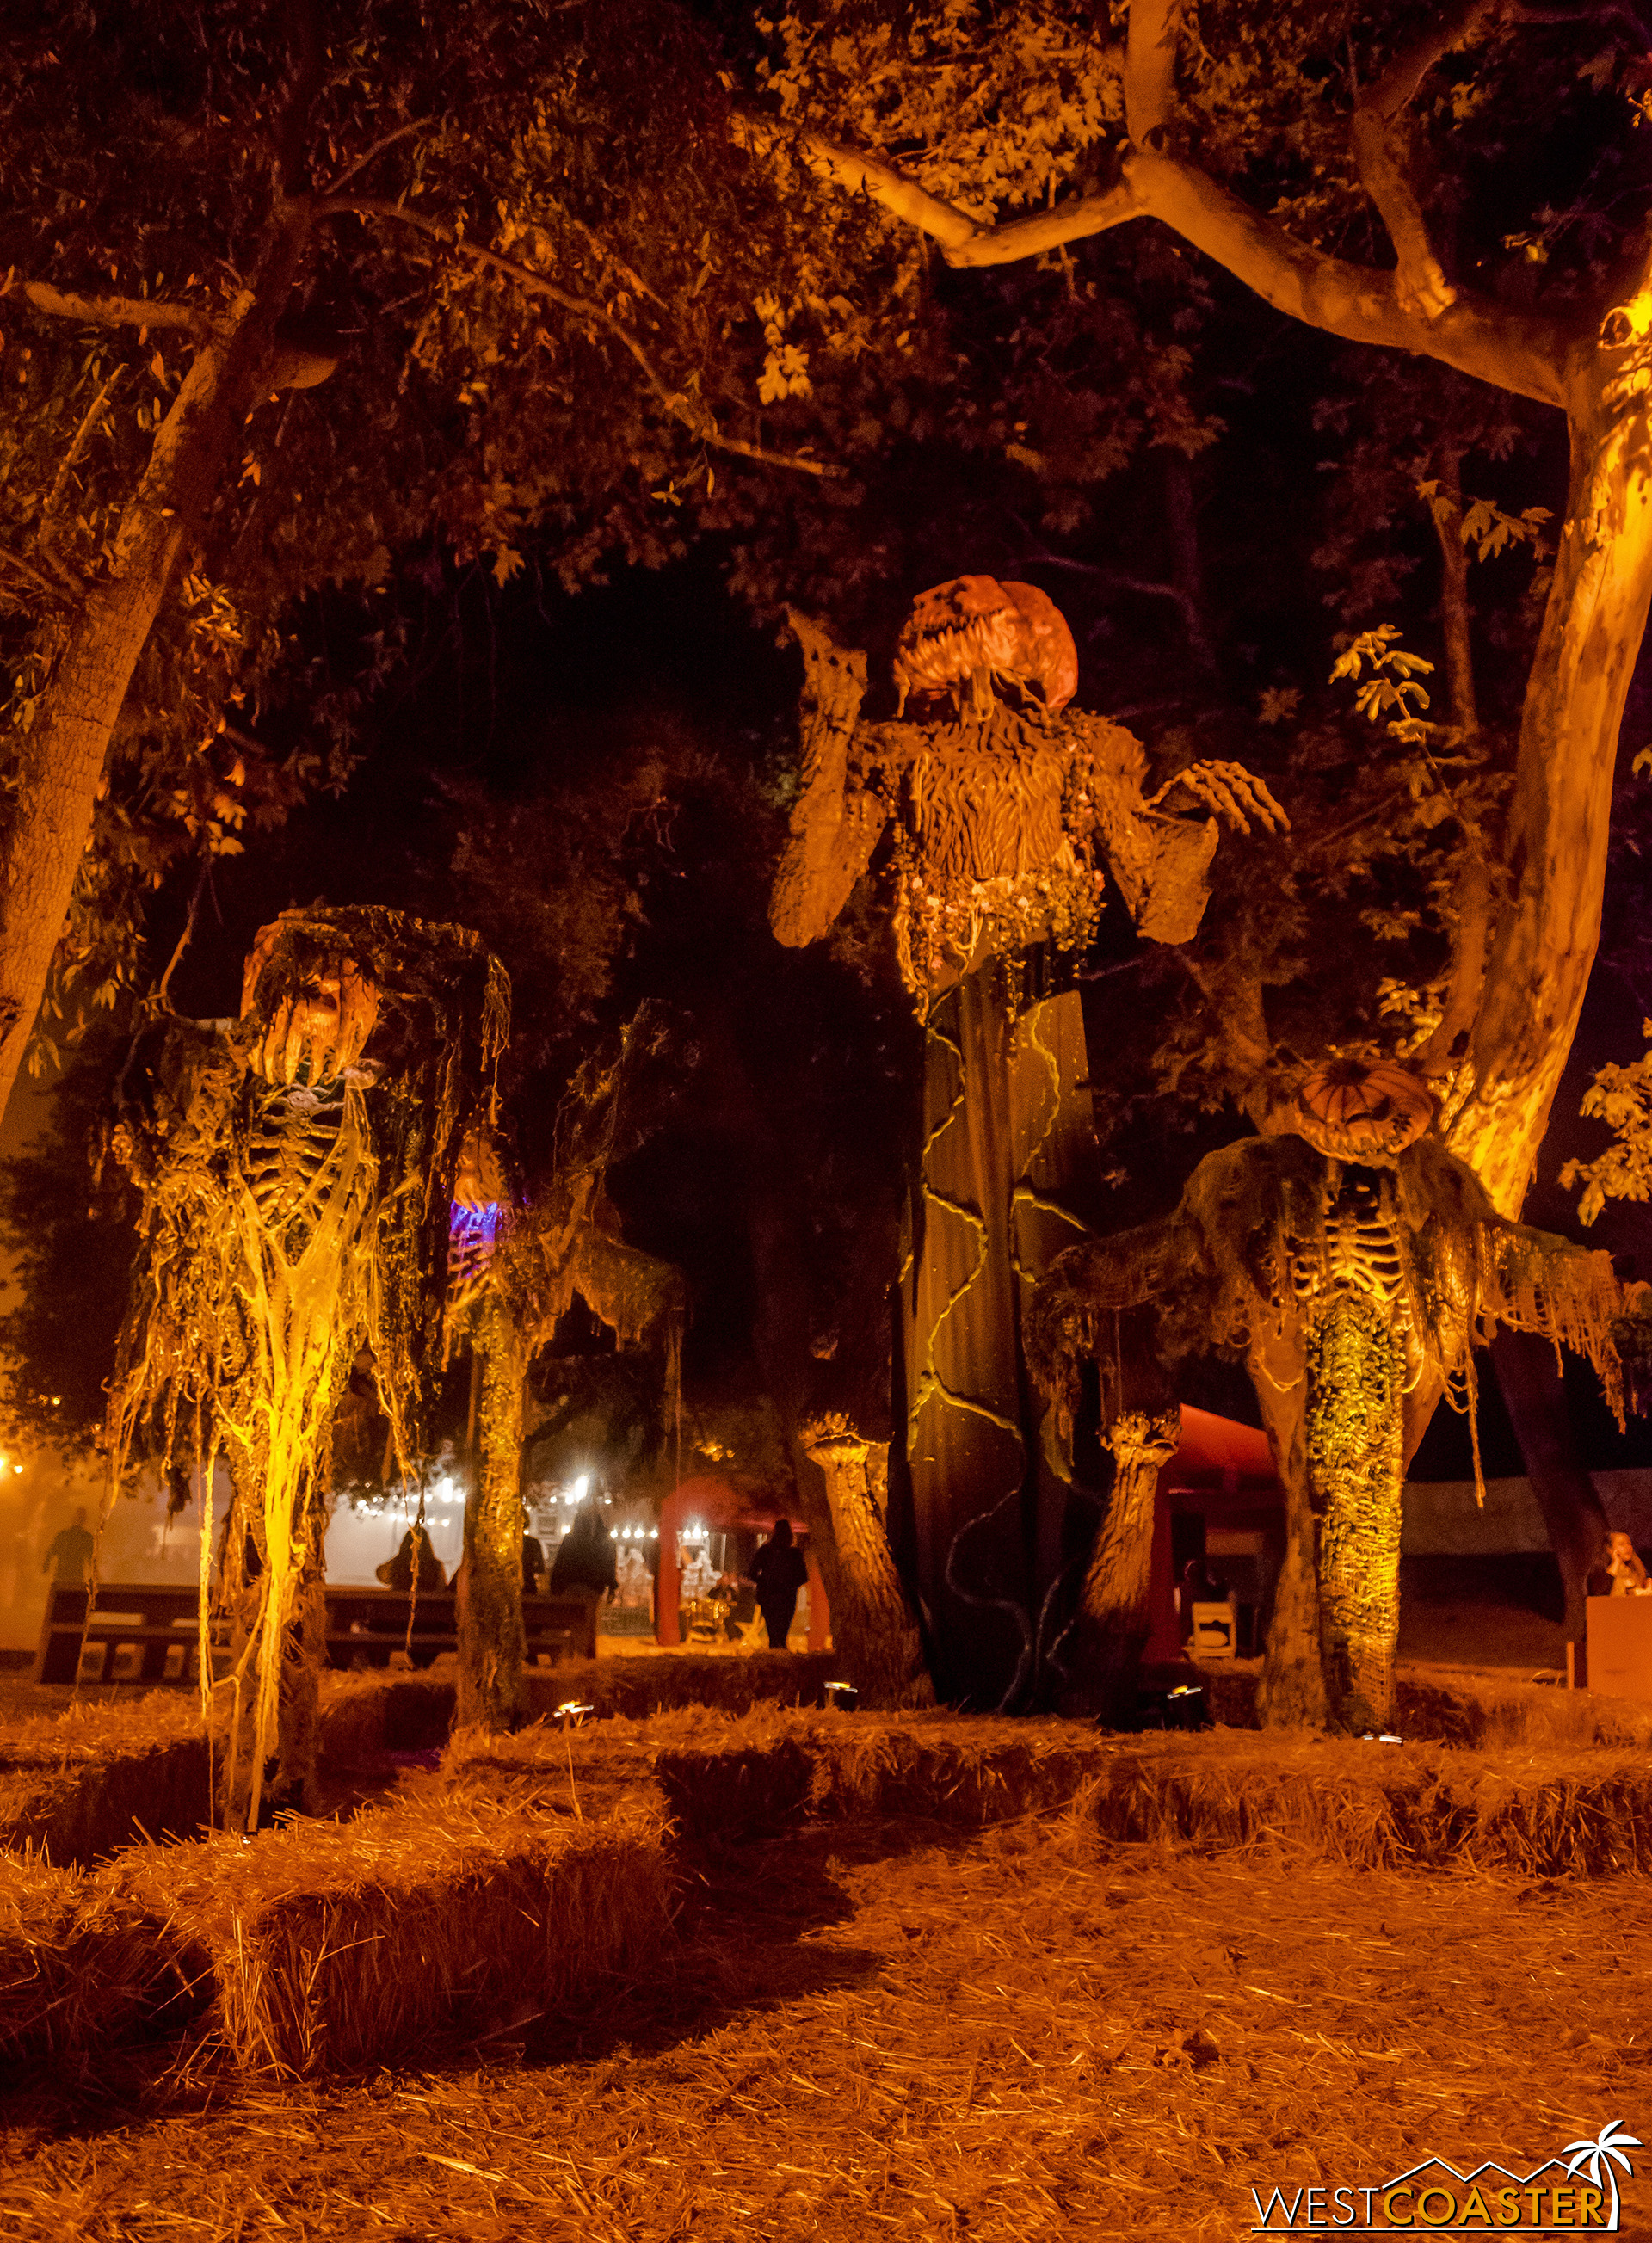 There is some nice atmosphere around the Purgatory scare zone area.